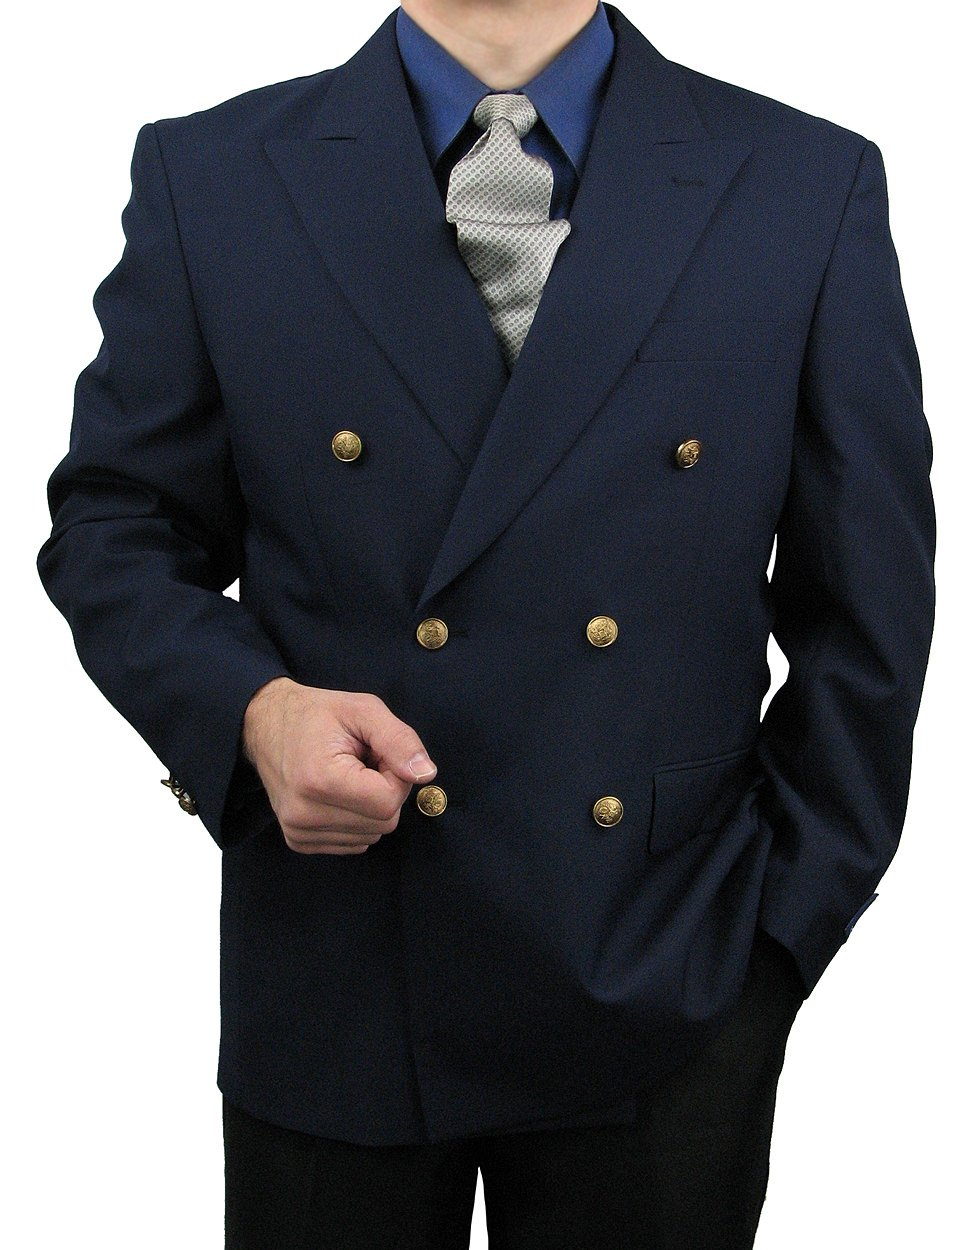 Triple Blessings Men's Classic Fit Double-Breasted Blazer Jacket Sports Coat w/One Pair Of Dress Socks - Navy 46R by Triple Blessings (Image #3)